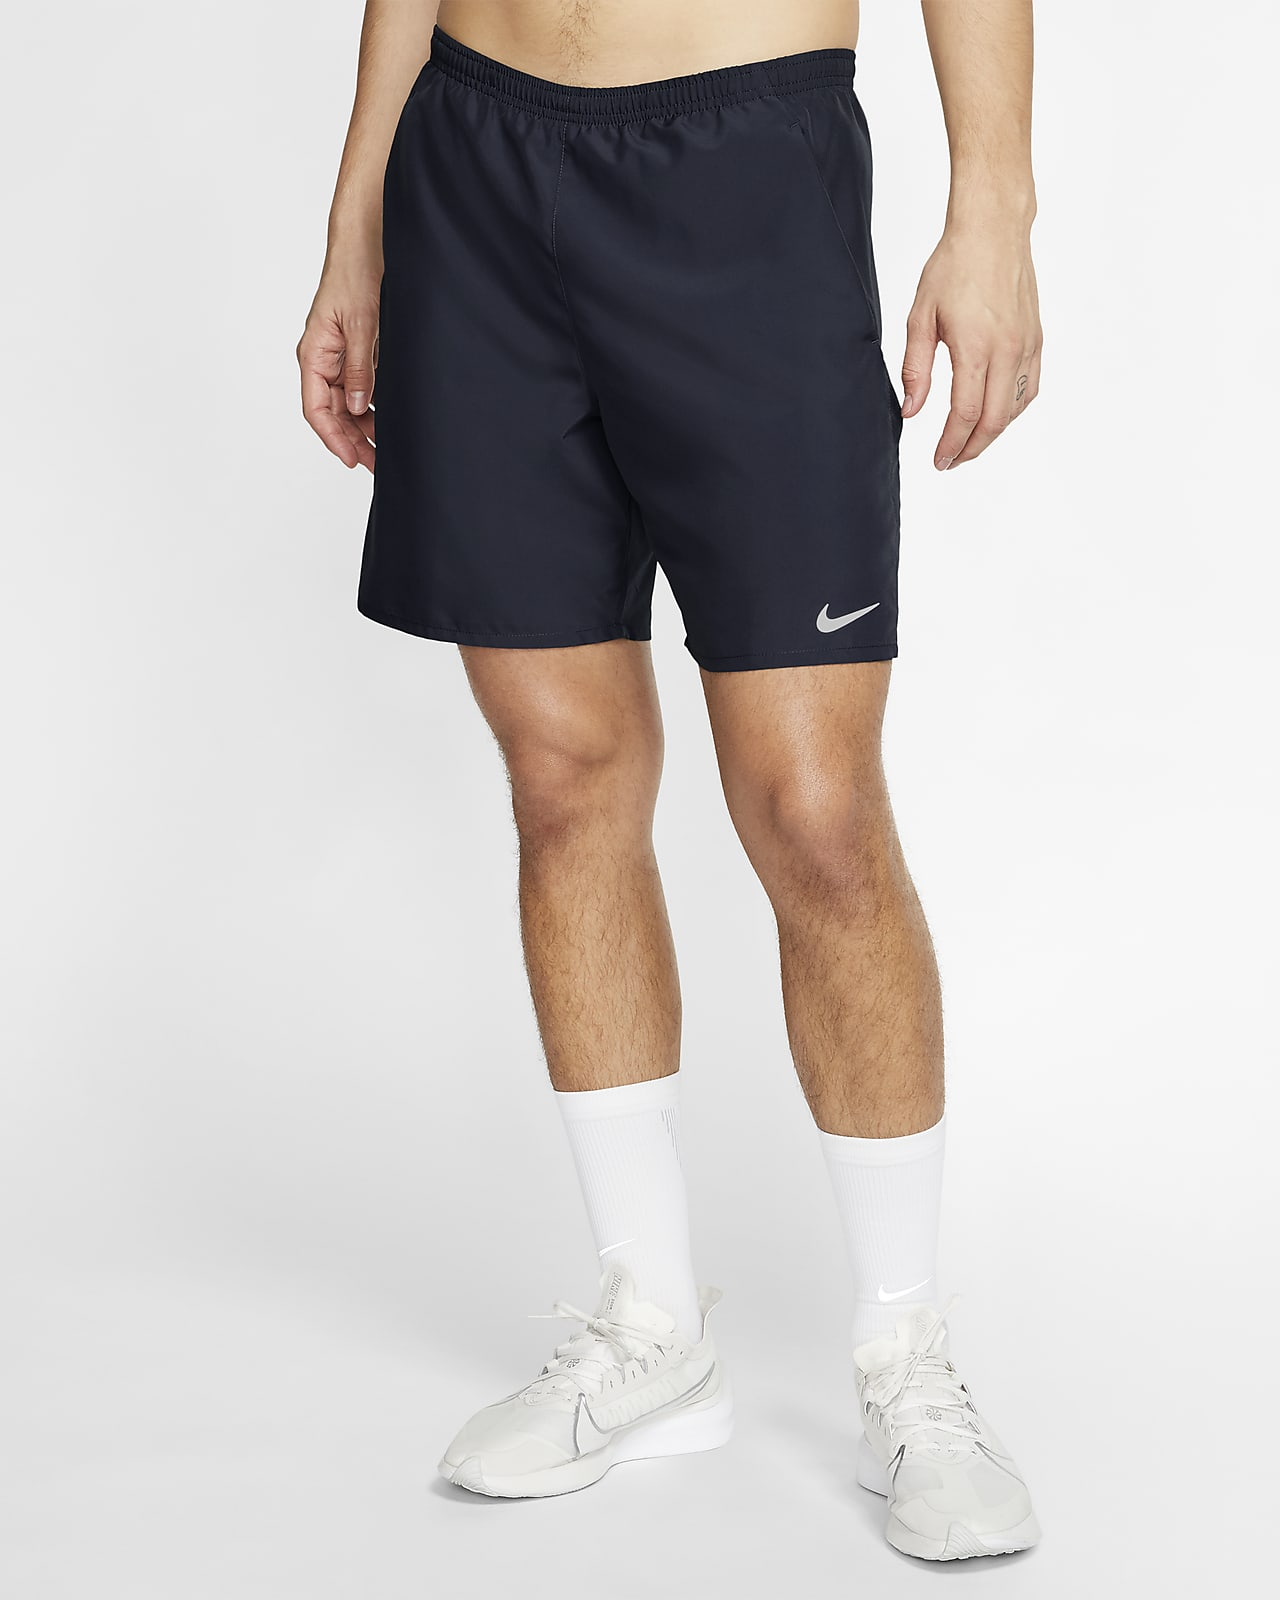 Nike Men's 18cm (approx.) Running Shorts